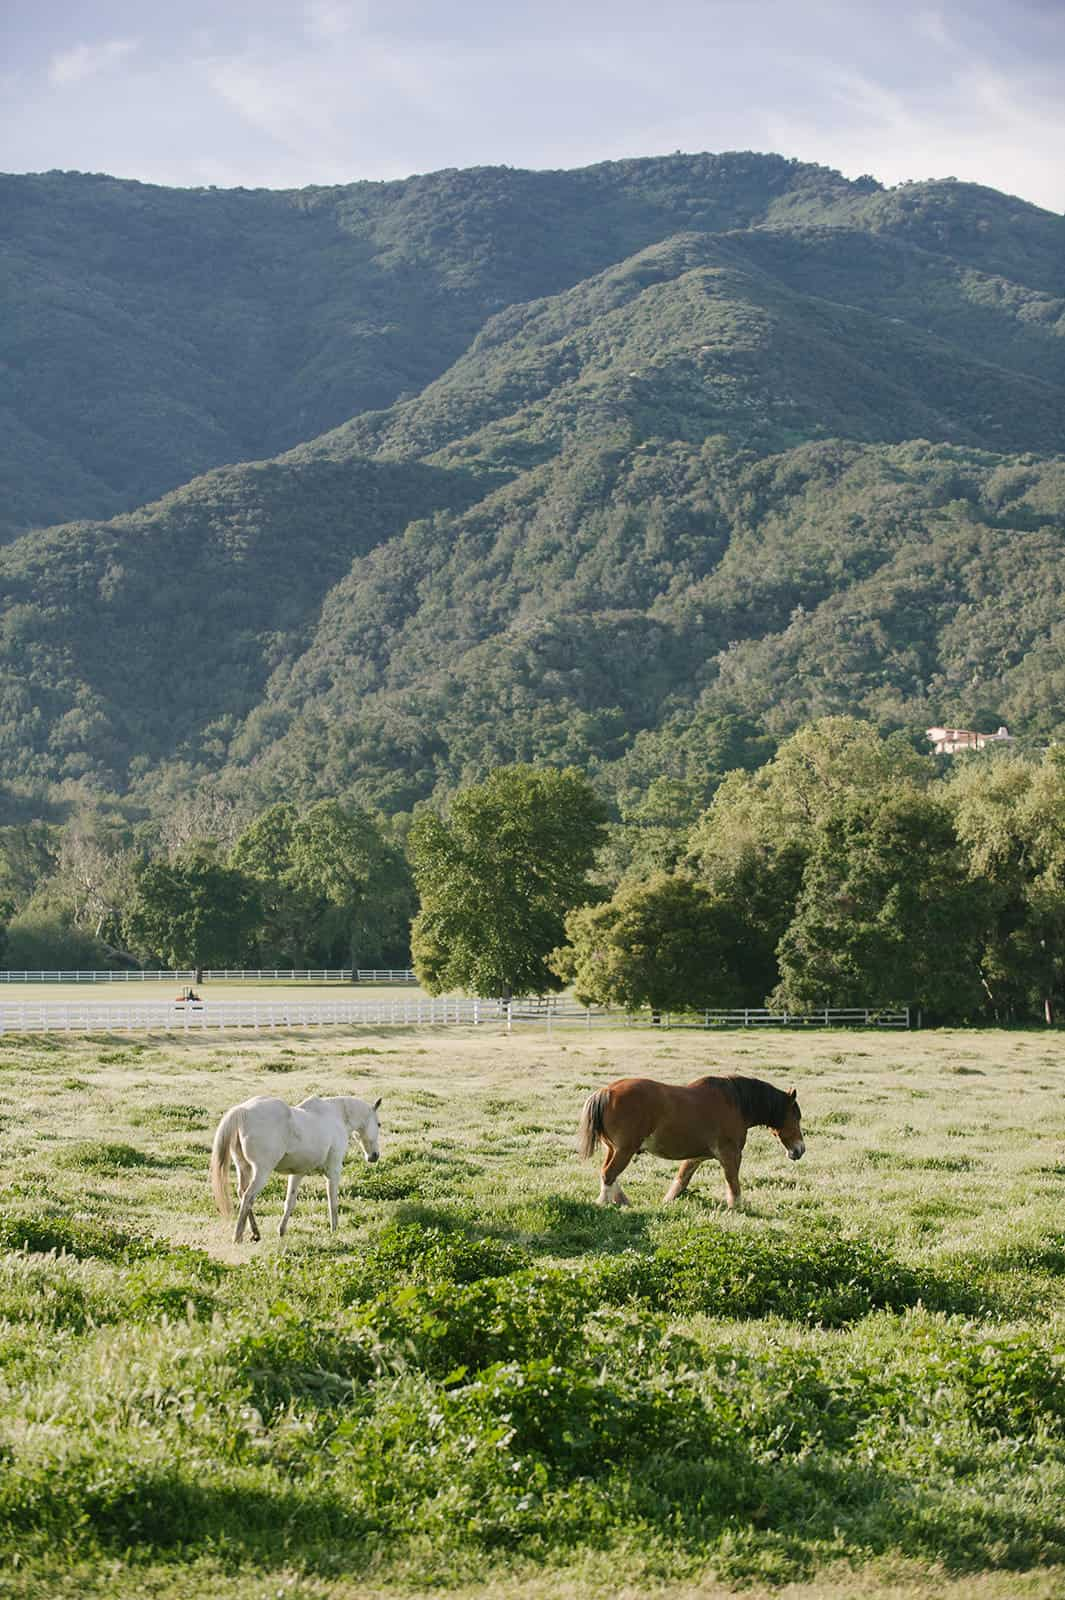 If you follow along on Instagram, you might have seen snippets from my recent trip to Santa Ynez in southern California as we celebrated the launch of Pacific Natural by Jenni Kayne. Today I am excited to share more details and photos!